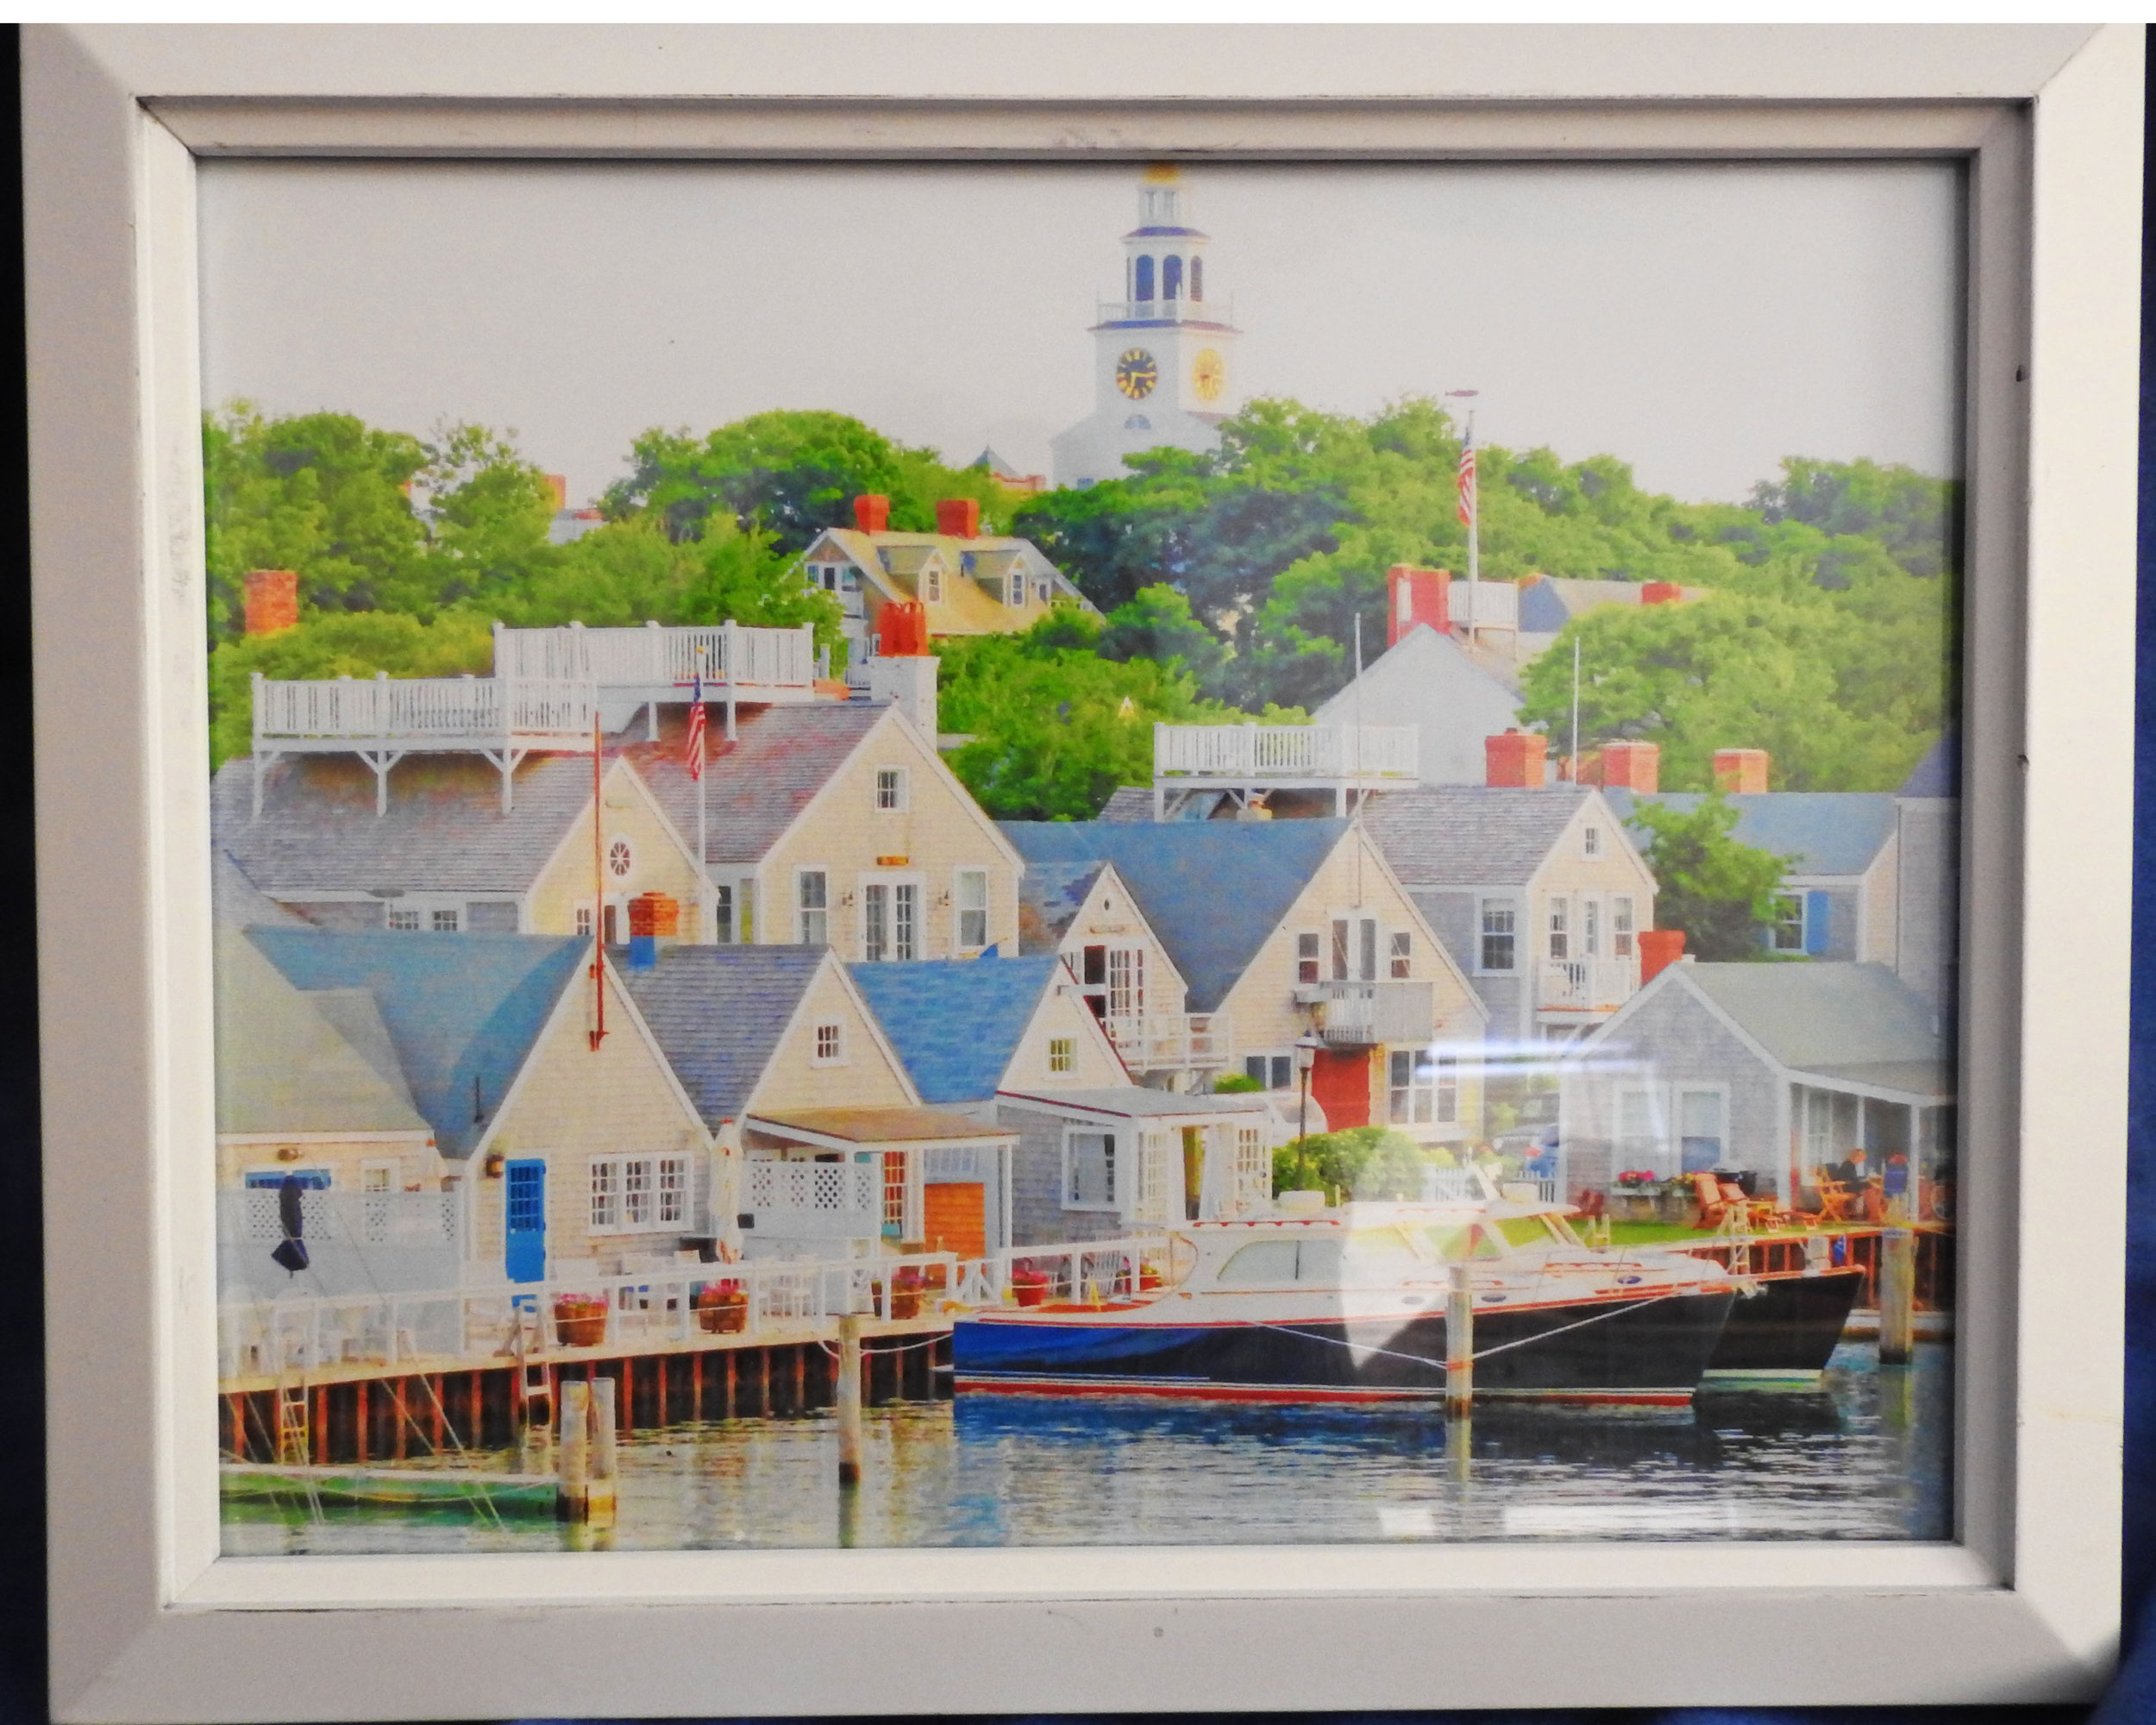 CAPE COD PHOTO DESIGN